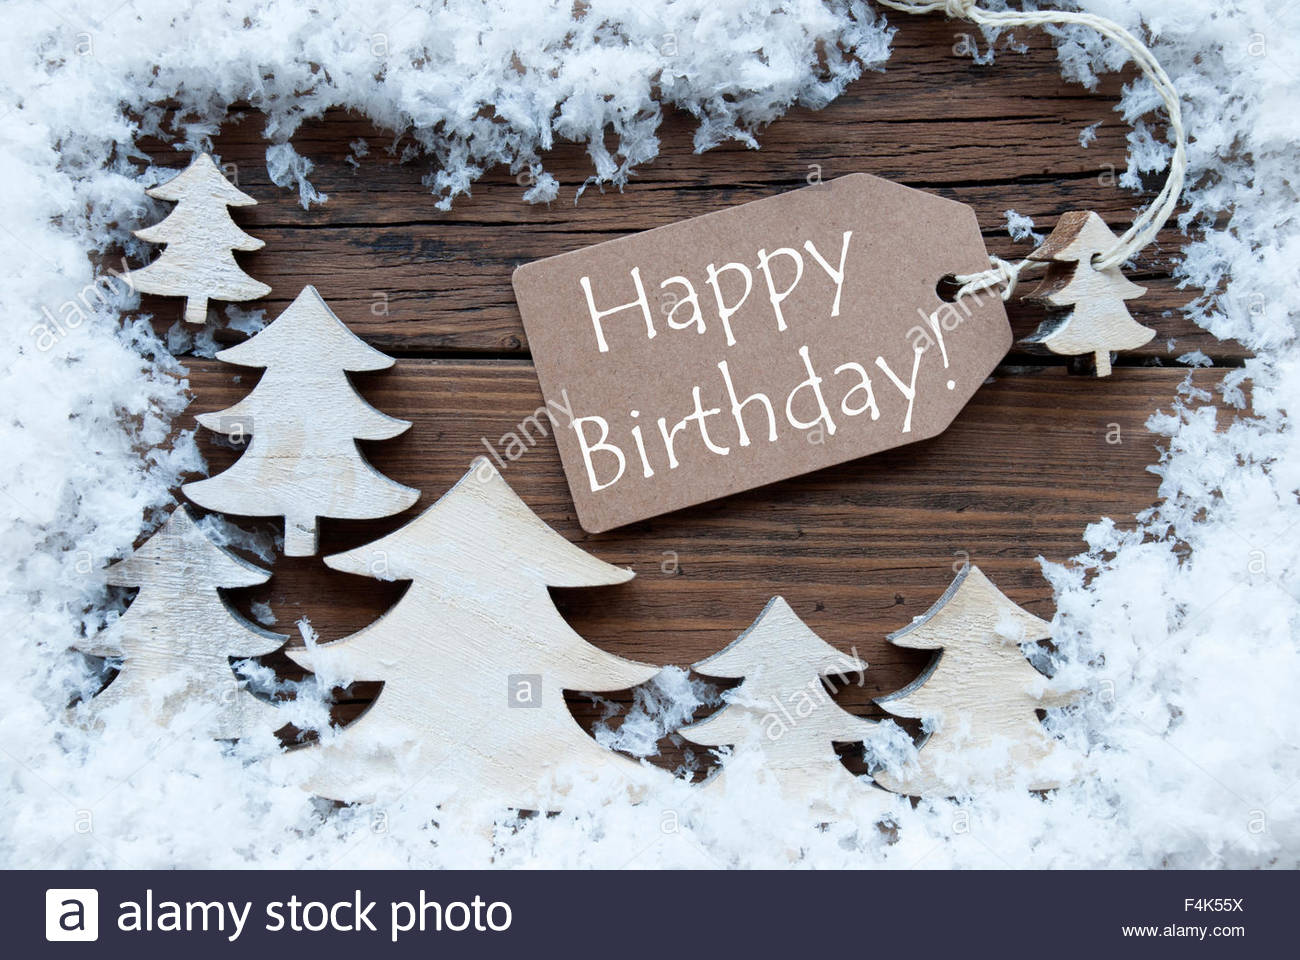 happy birthday christmas ; label-christmas-trees-and-snow-happy-birthday-F4K55X